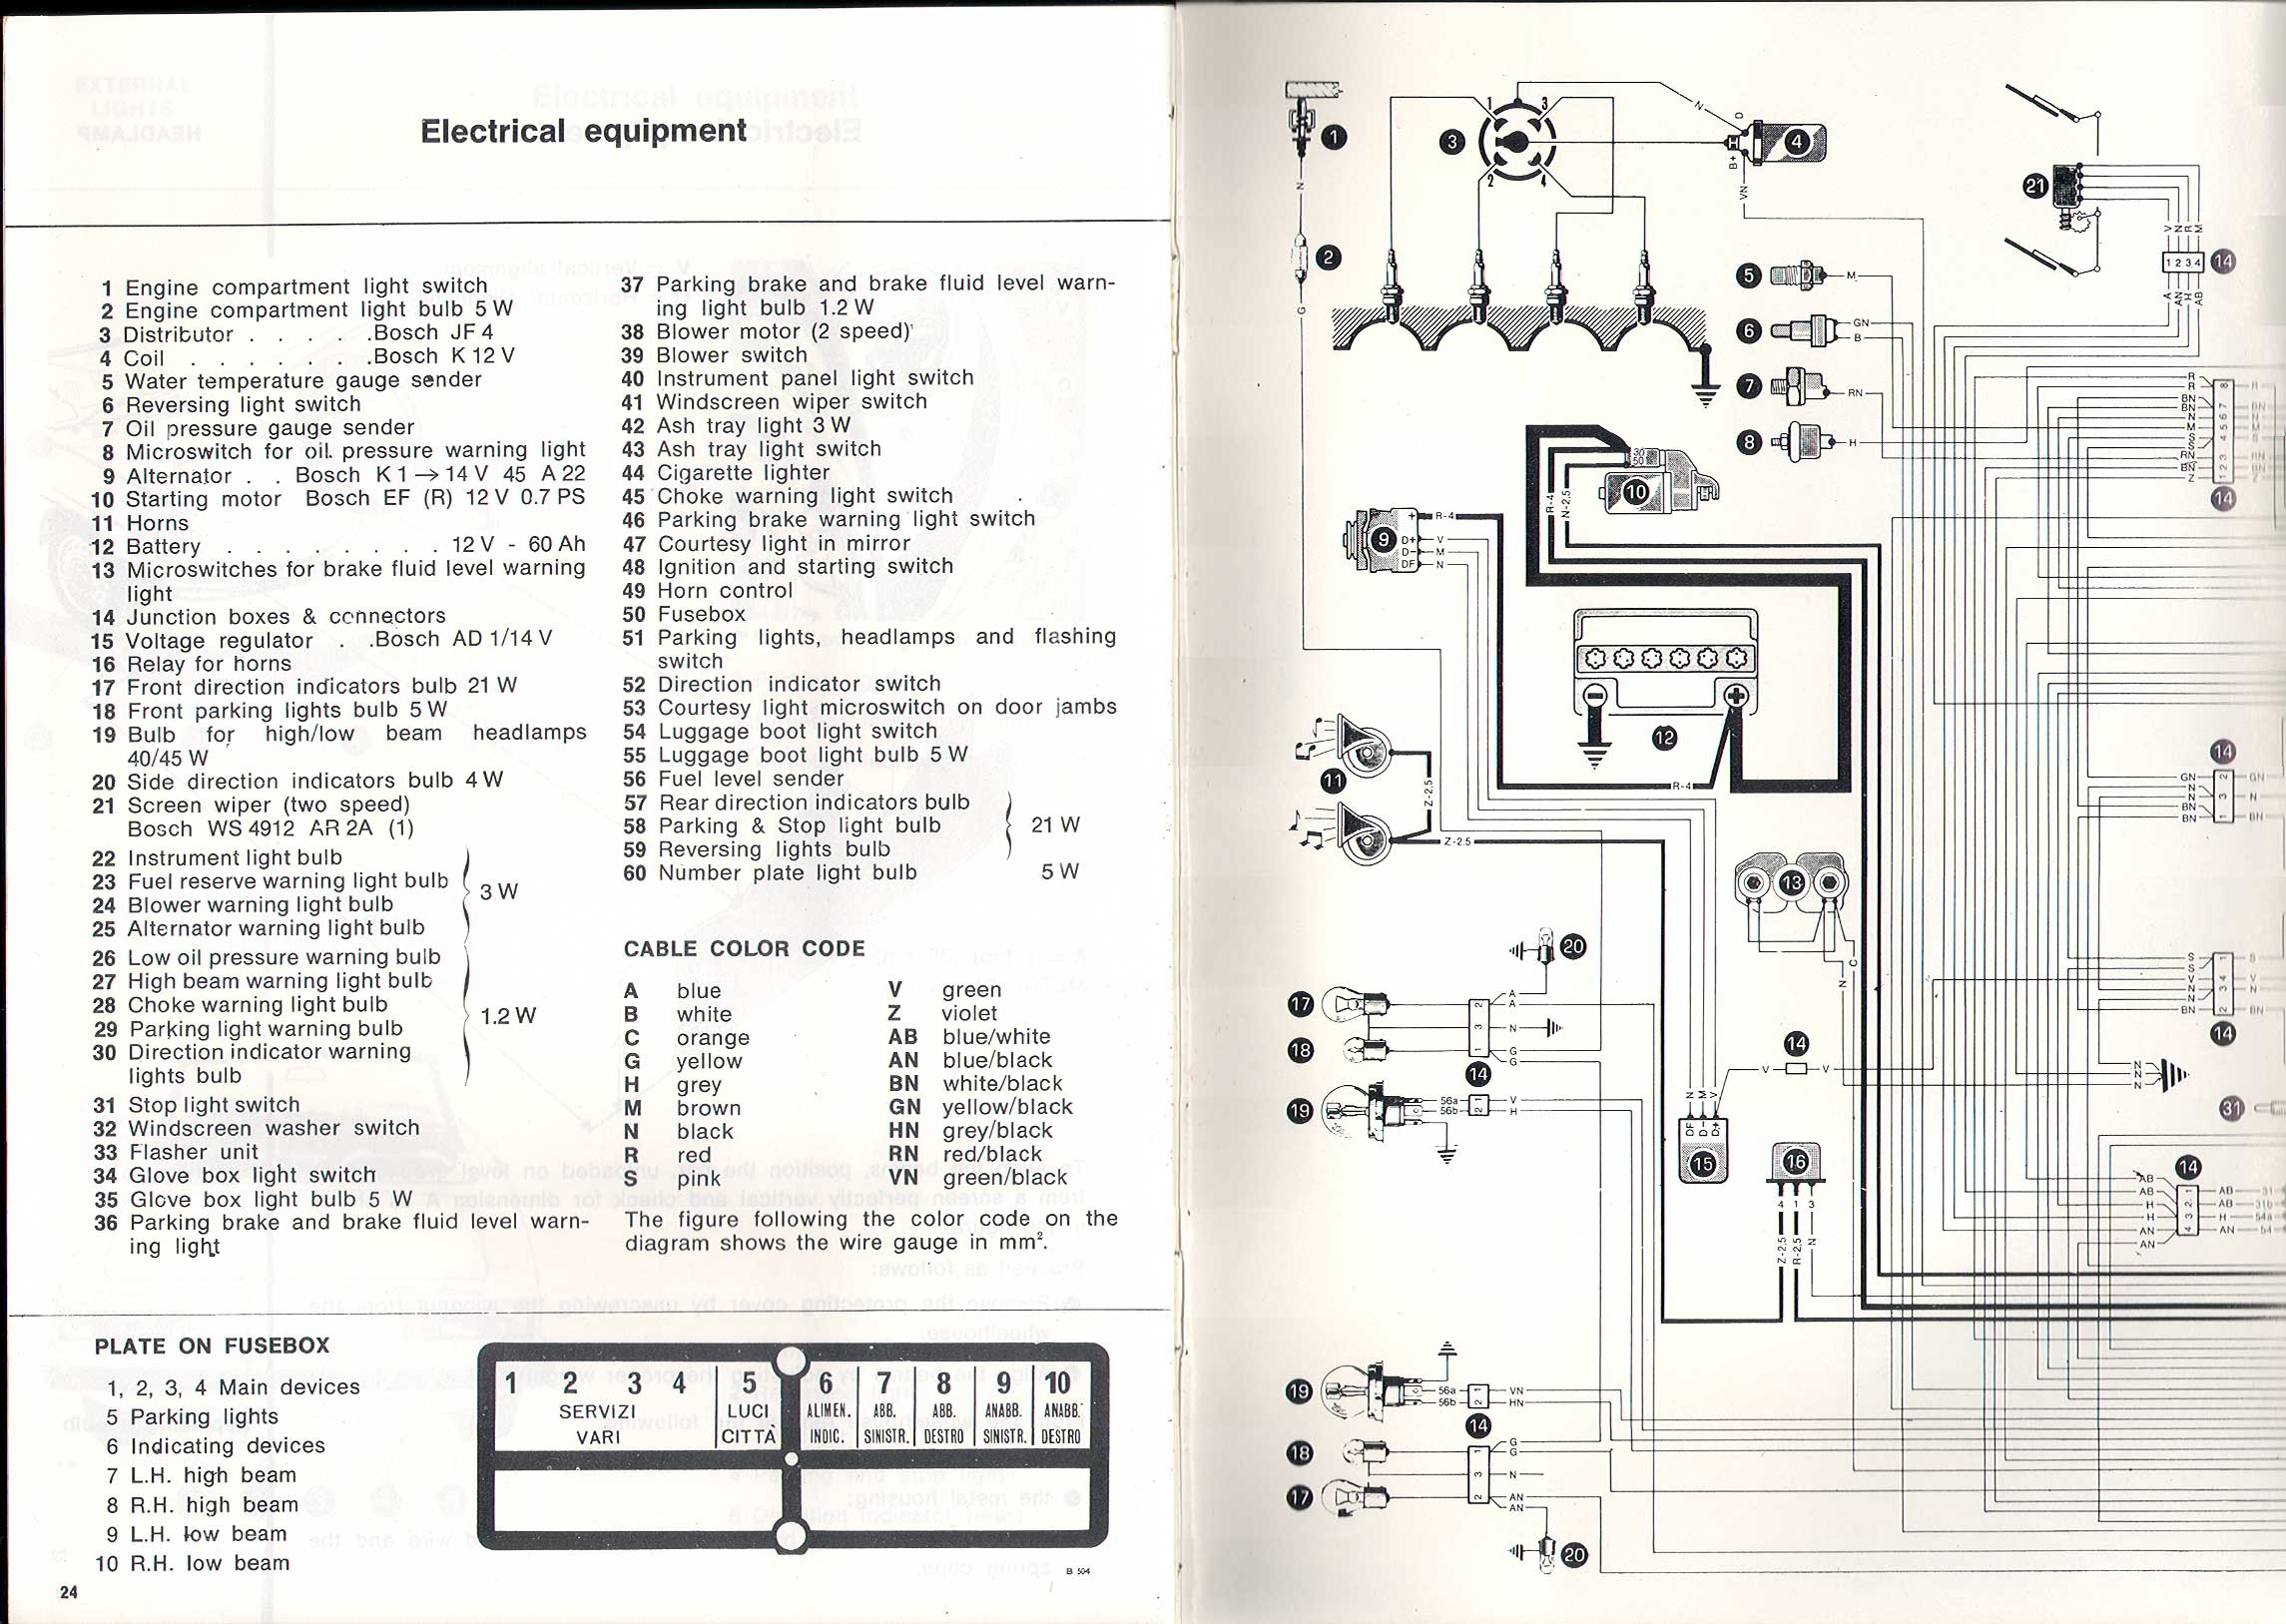 wiring1 aroc members site & forums \u2022 view topic wiring diagram lx torana v8 wiring diagram at soozxer.org